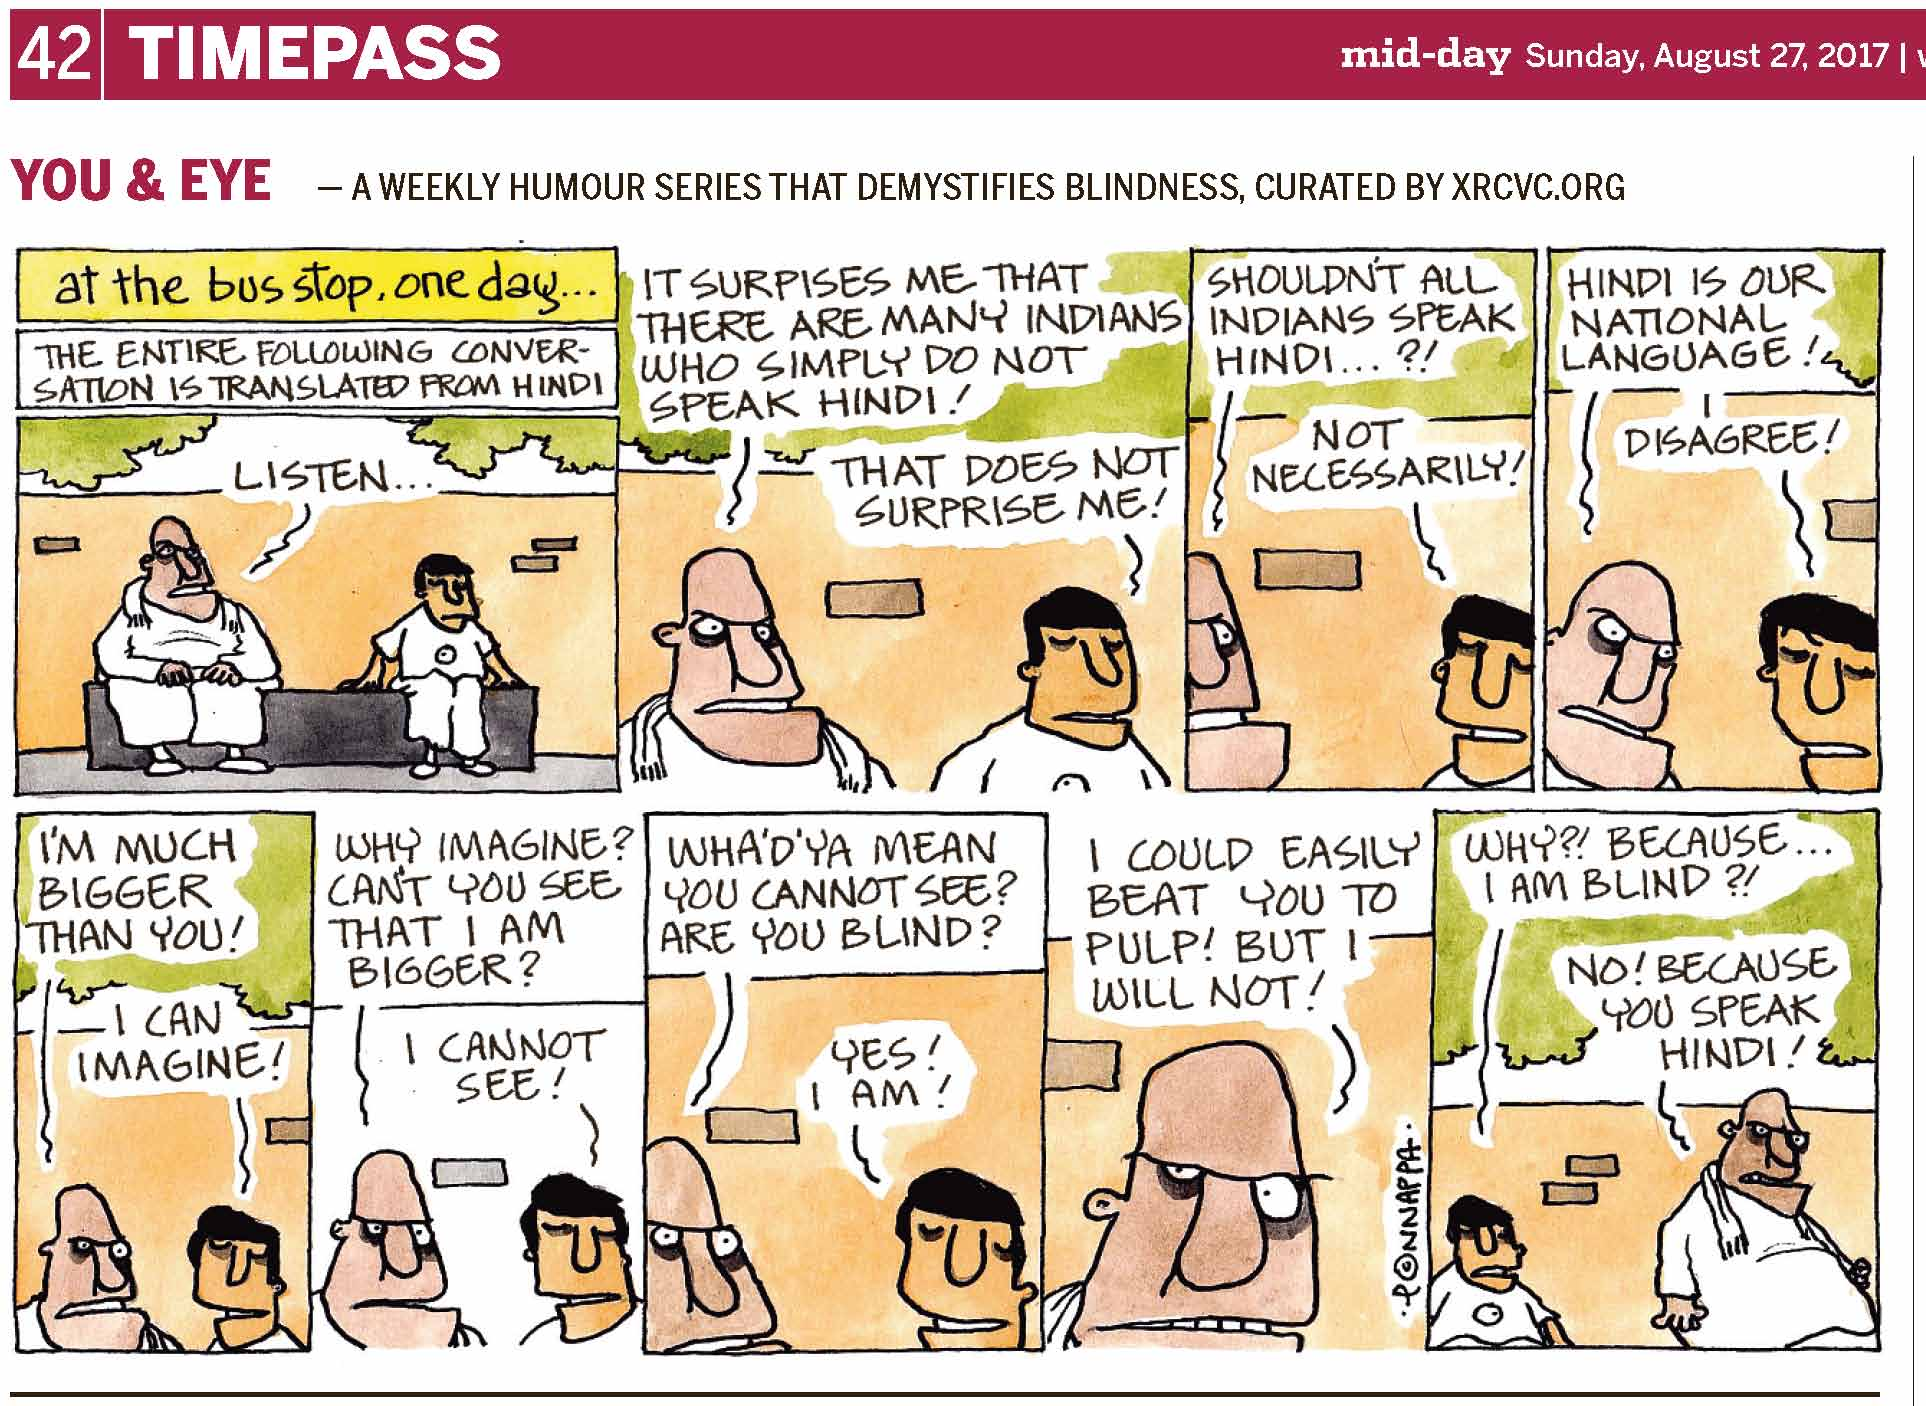 (top-left) 42 | TIMEPASS (top-right) mid-day Sunday, August 27, 2017 | YOU & EYE – A WEEKLY HUMOUR SERIES THAT DEMYSTIFIES BLINDNESS, CURATED BY XRCVC.ORG Image description: A cartoon strip with 9 frames… Frame 1: (A bald man with a big forehead and a broad protruding jawline wearing white, with a white cloth around his shoulders is seated on a parapet with BG seated a little away, on his left. A high wall is seen behind them, above which there is the greenery of trees. Text: At the bus stop, one day… The entire following  conversation is translated from Hindi Bald man: Listen… Frame 2: (A close-up of the bald man and BG with the wall behind them and greenery above) Bald man: